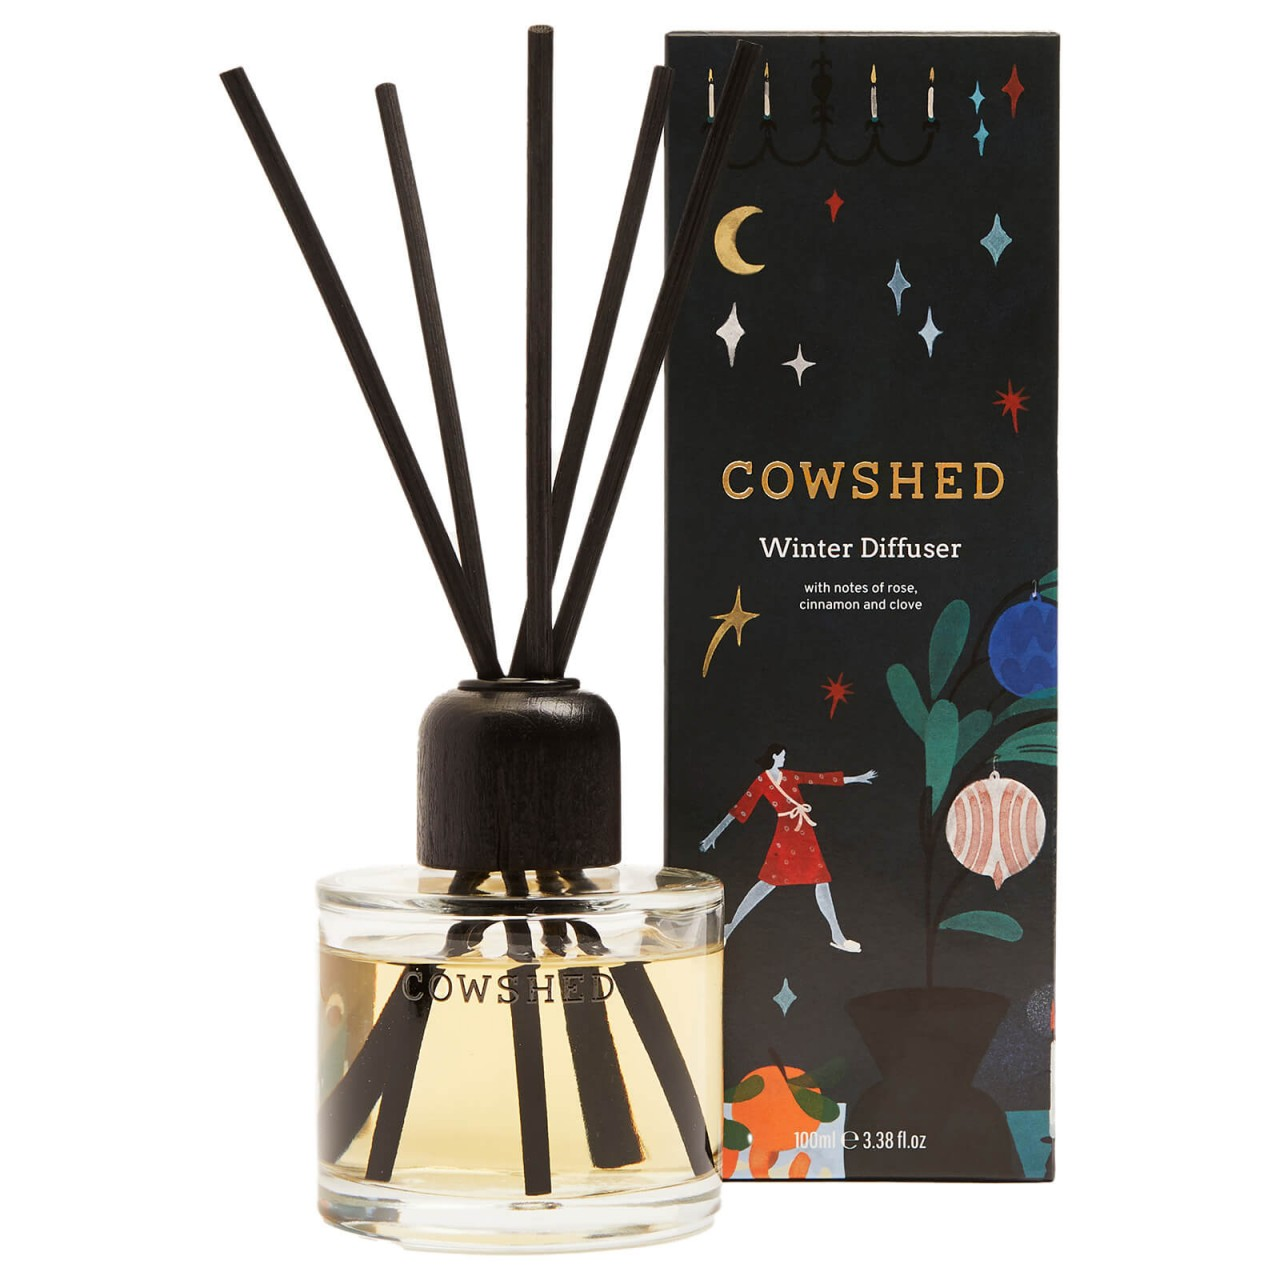 Cowshed Winter Diffuser